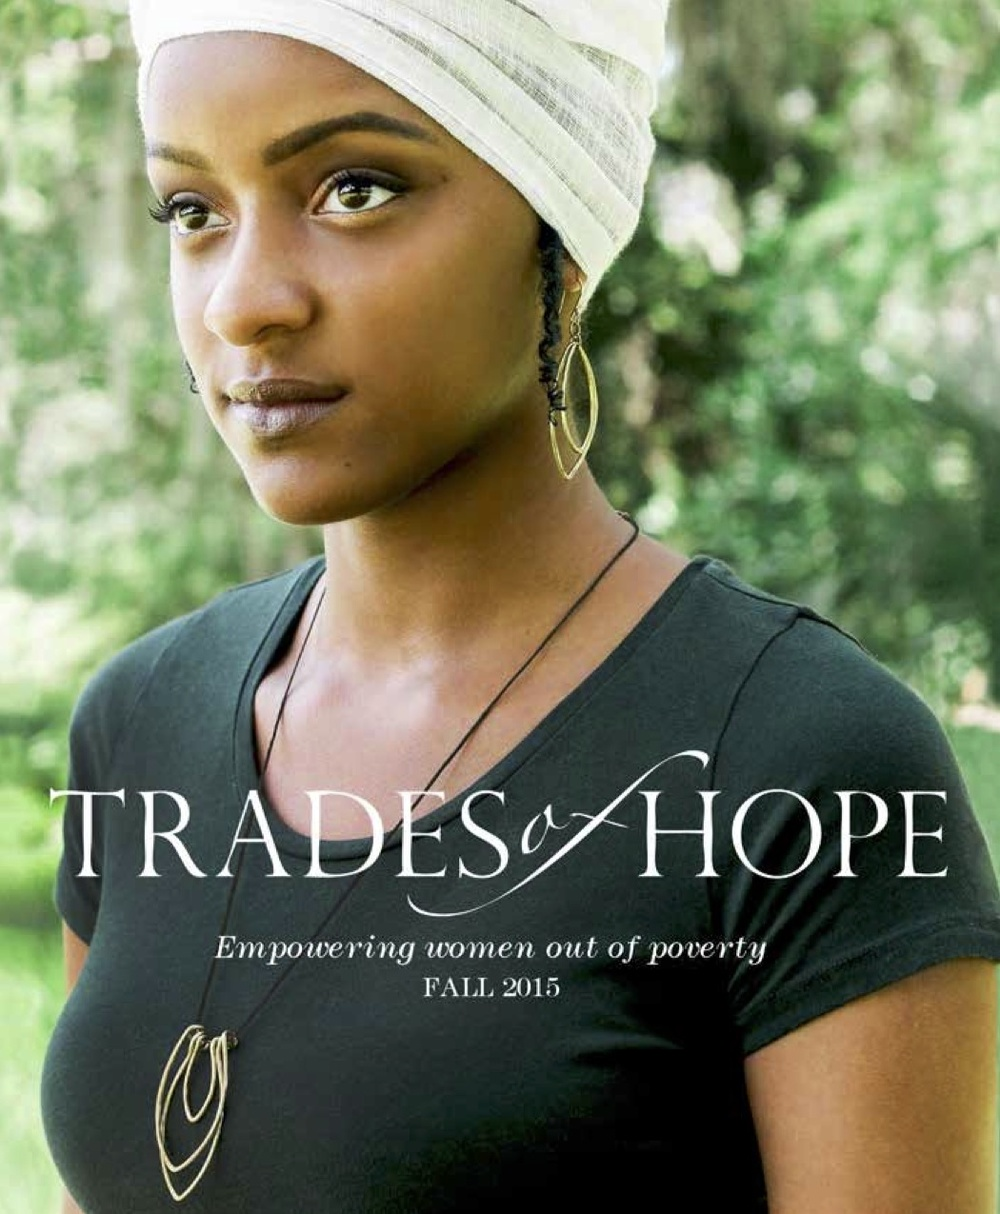 Trades of Hope catalog, Fall 2015